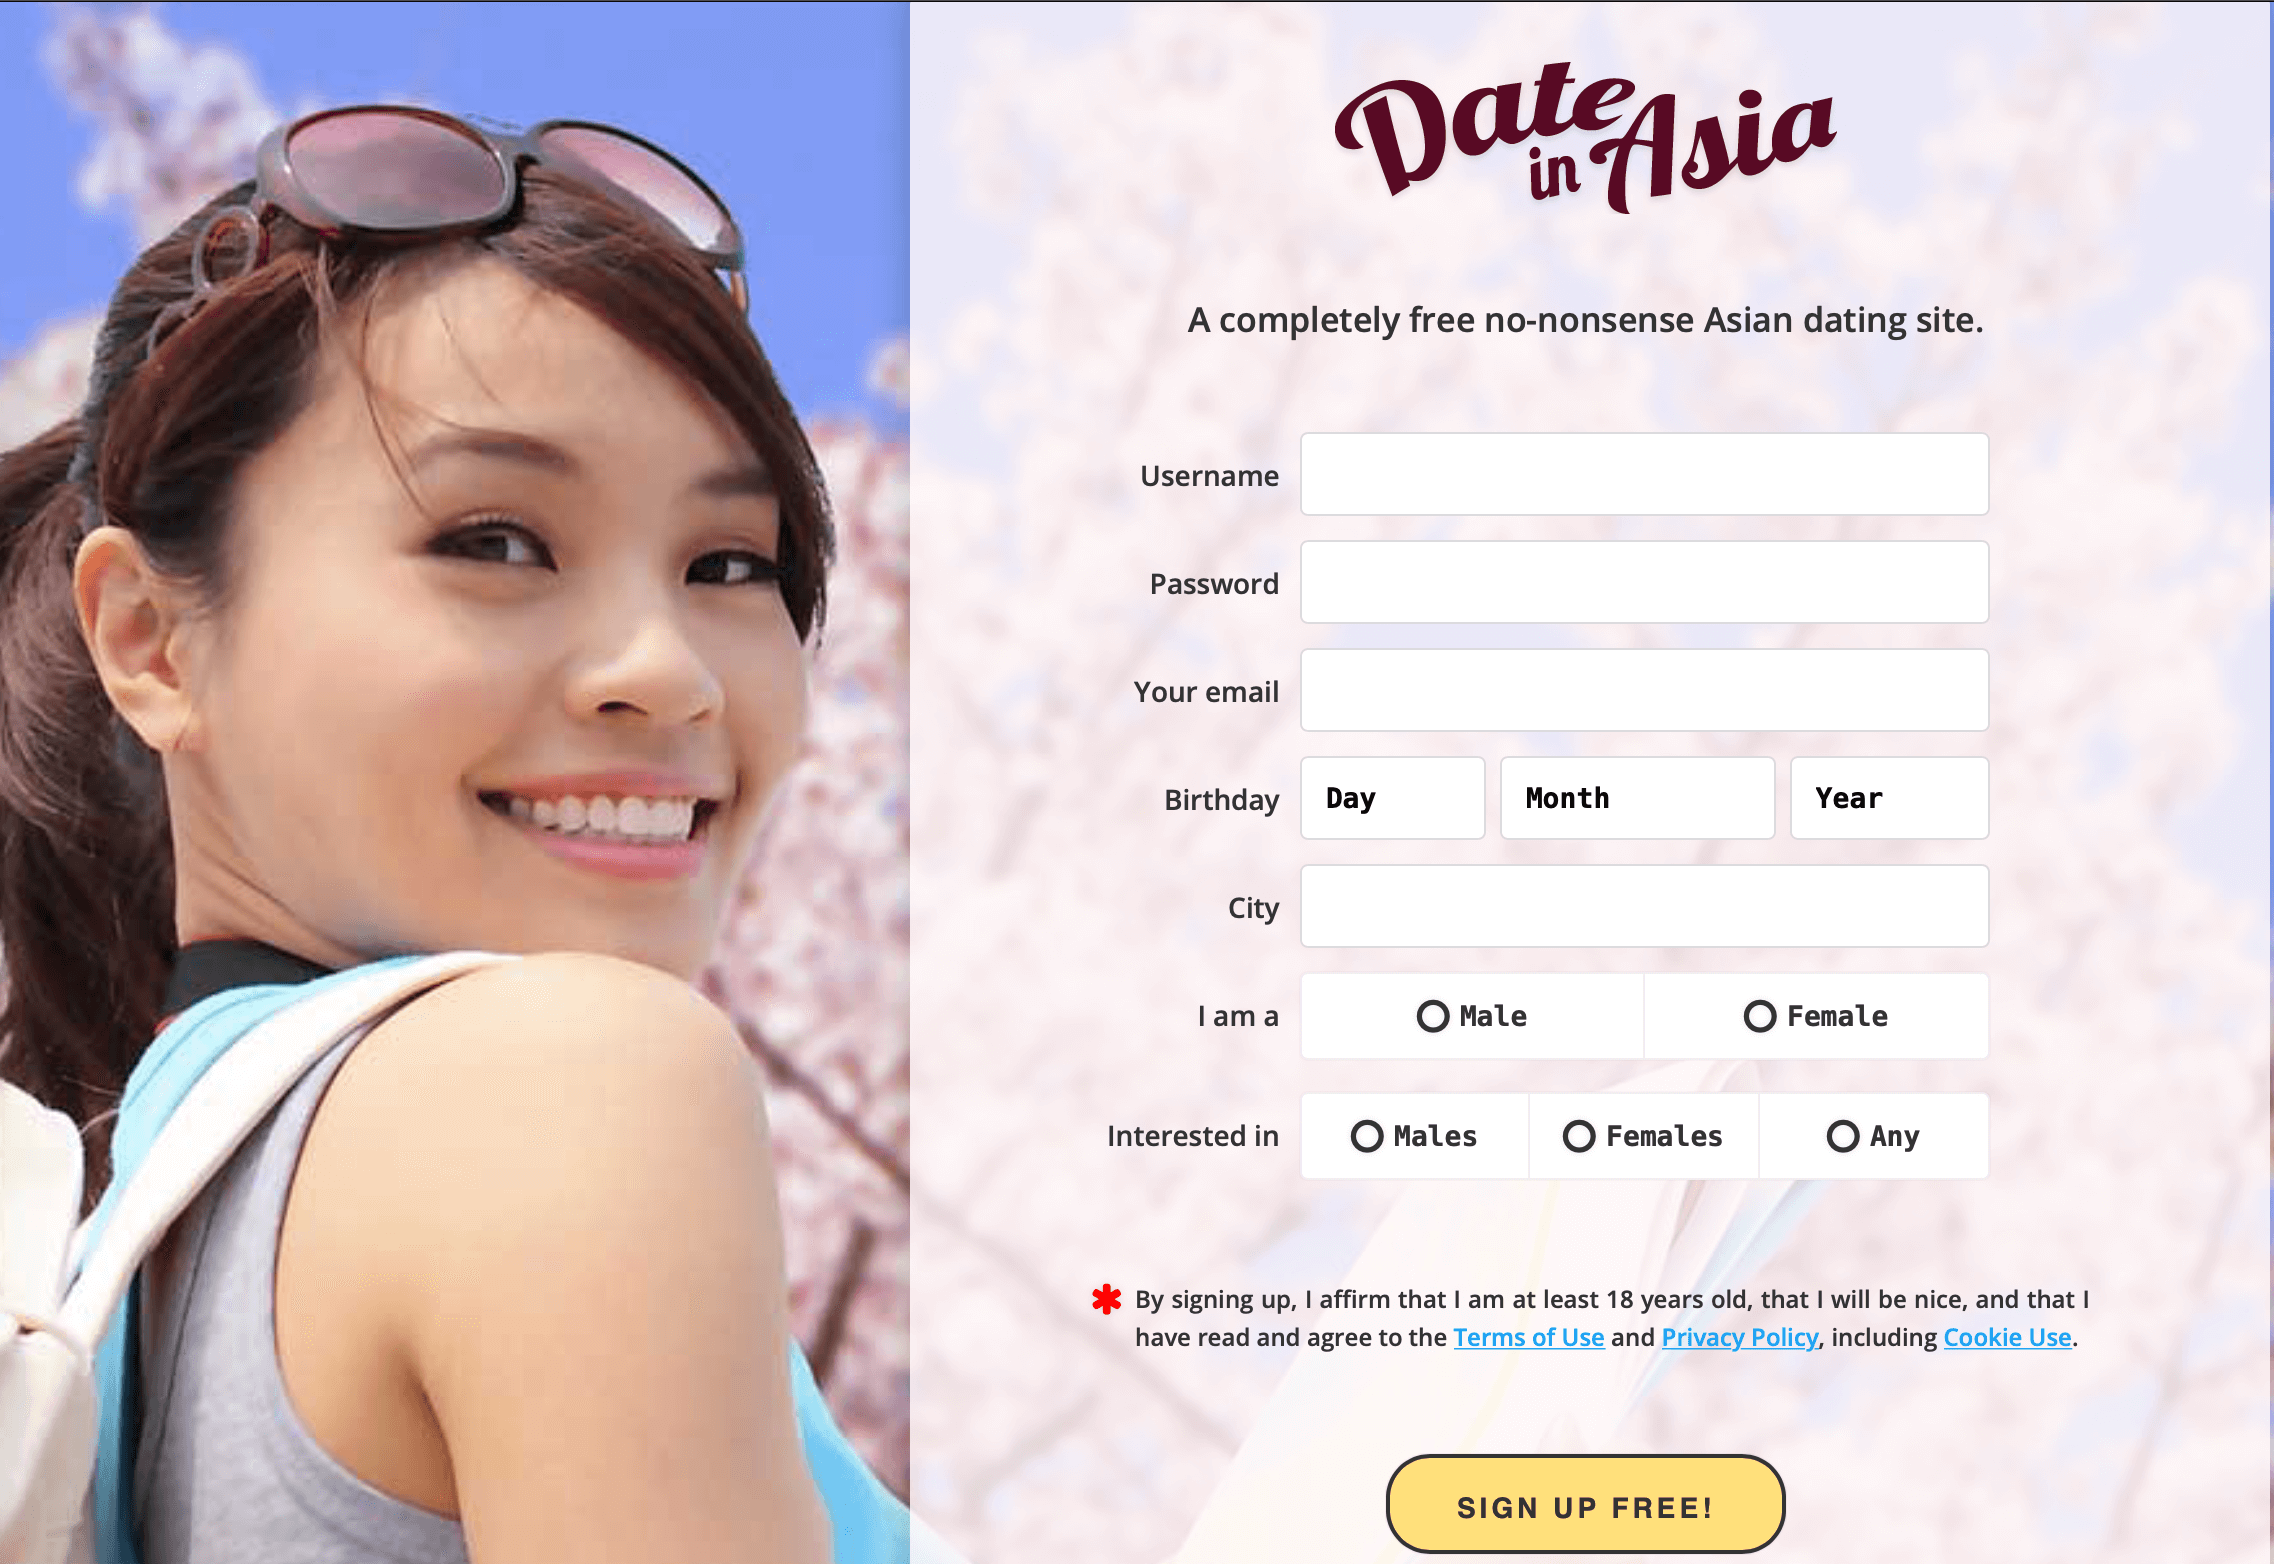 Dateinasia registration